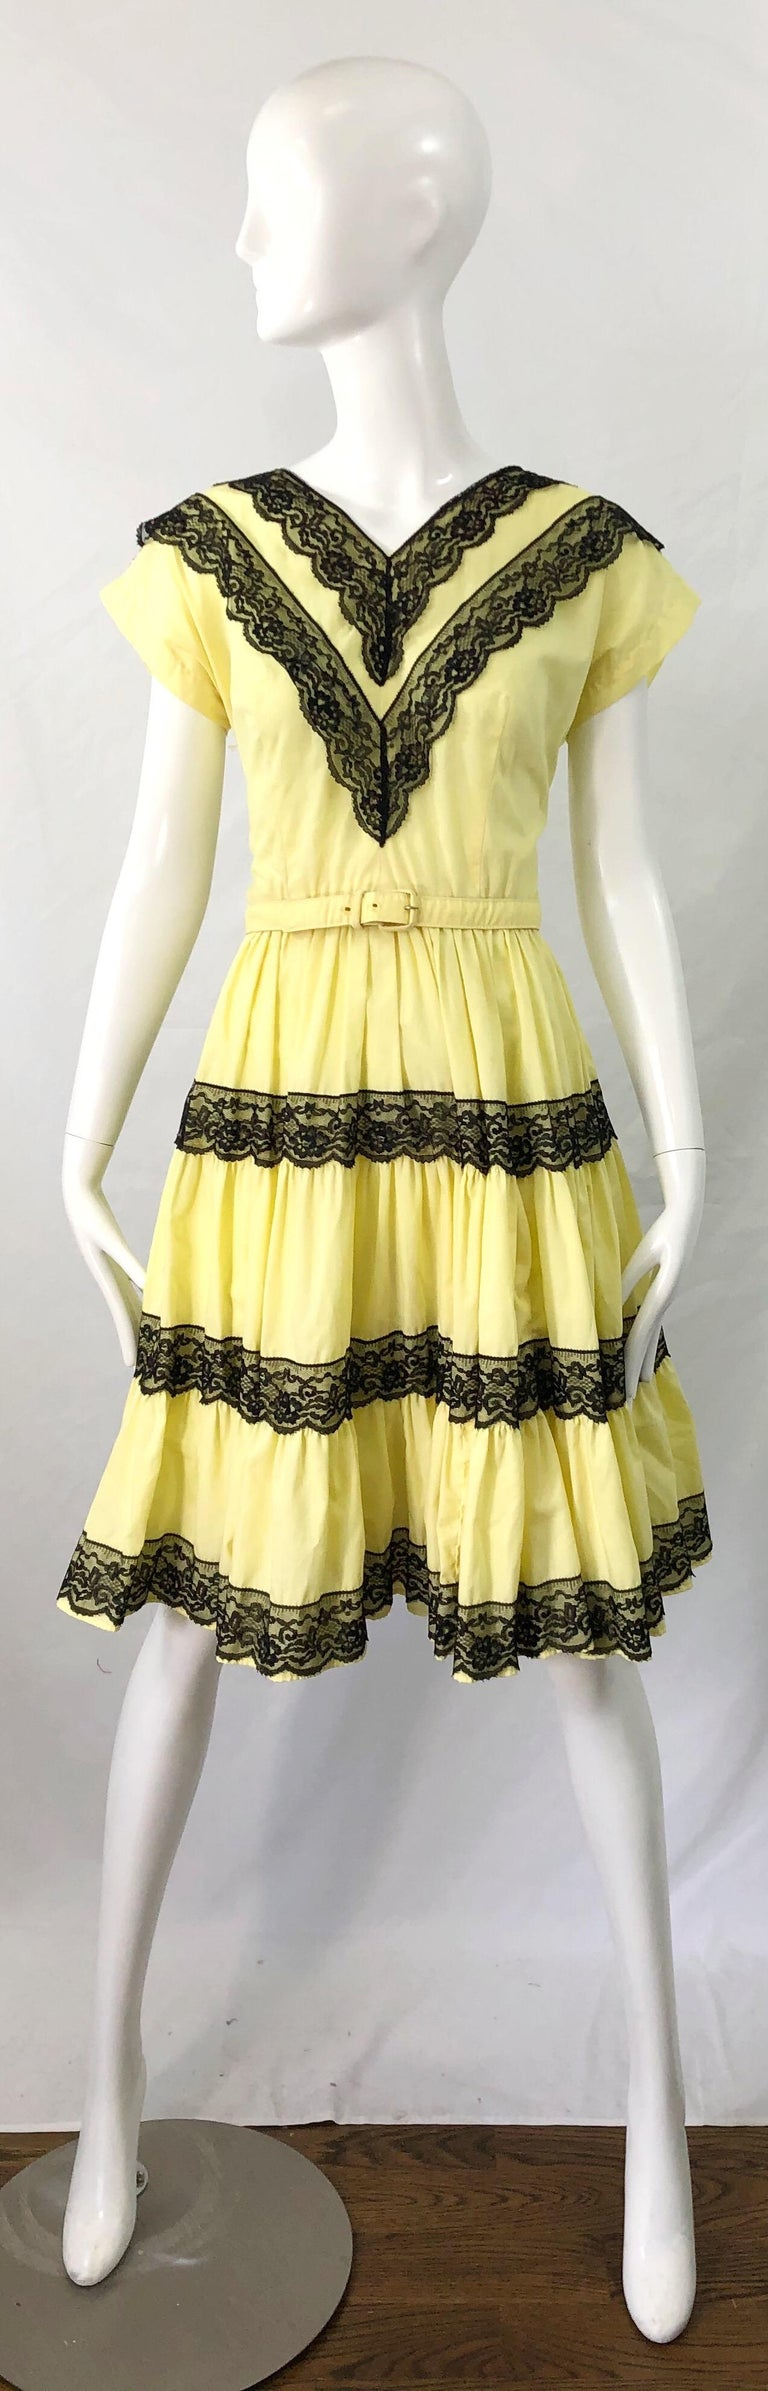 Beautiful 1950s BETTINA OF MIAMI lightweight cotton and lace fit n' flare belted dress ! Features a pale yellow cotton and black lace. Fitted tailored bodice with a forgiving full skirt. Full metal zipper up the back with  hook-and-eye closure.